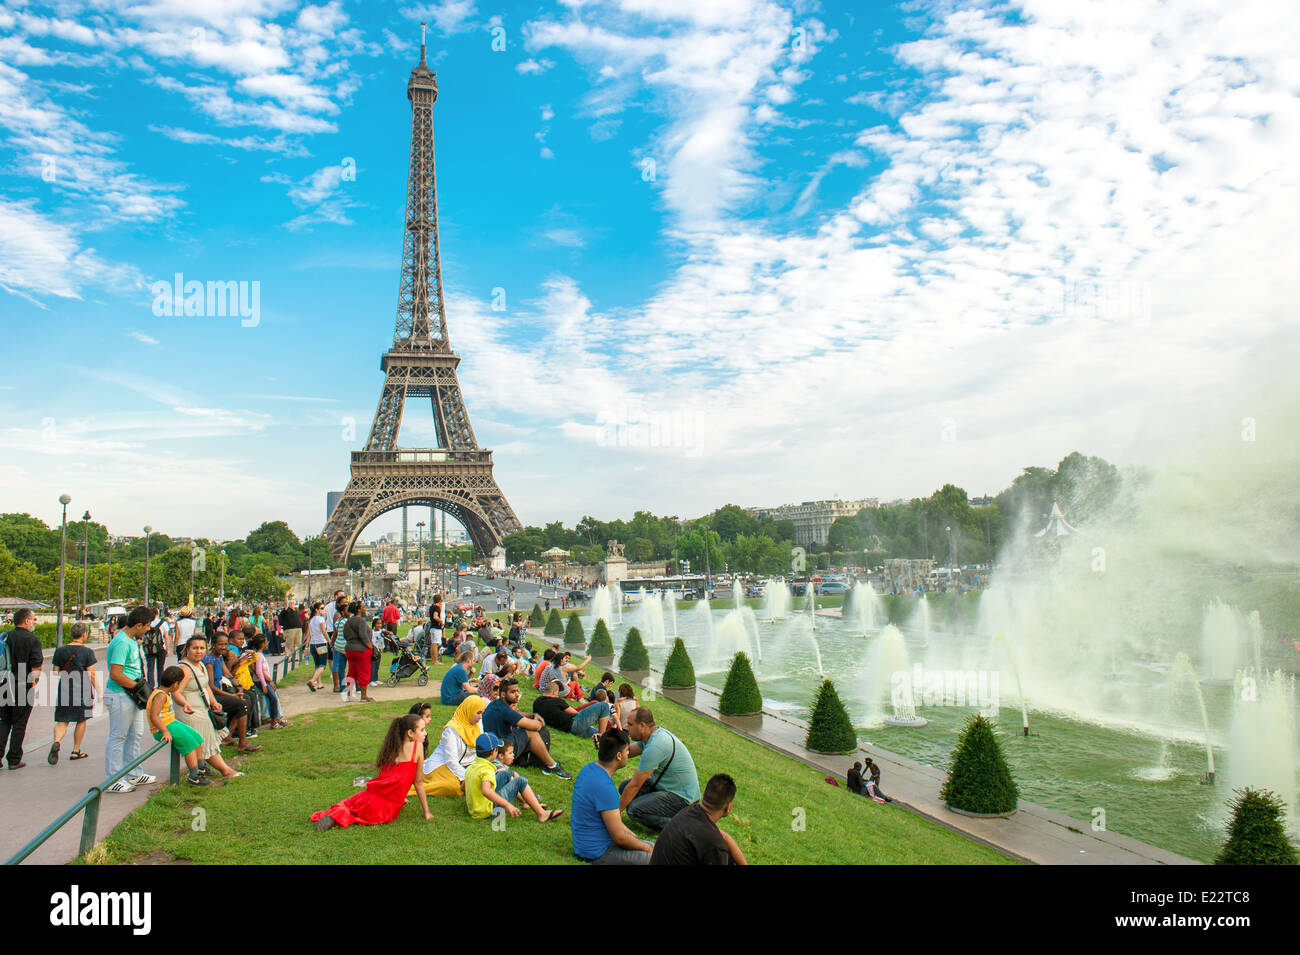 PARIS - AUGUST 23: many tourists sitting near famous Eiffel Tower and enjoying the evening on August 23, 2013 in - Stock Image